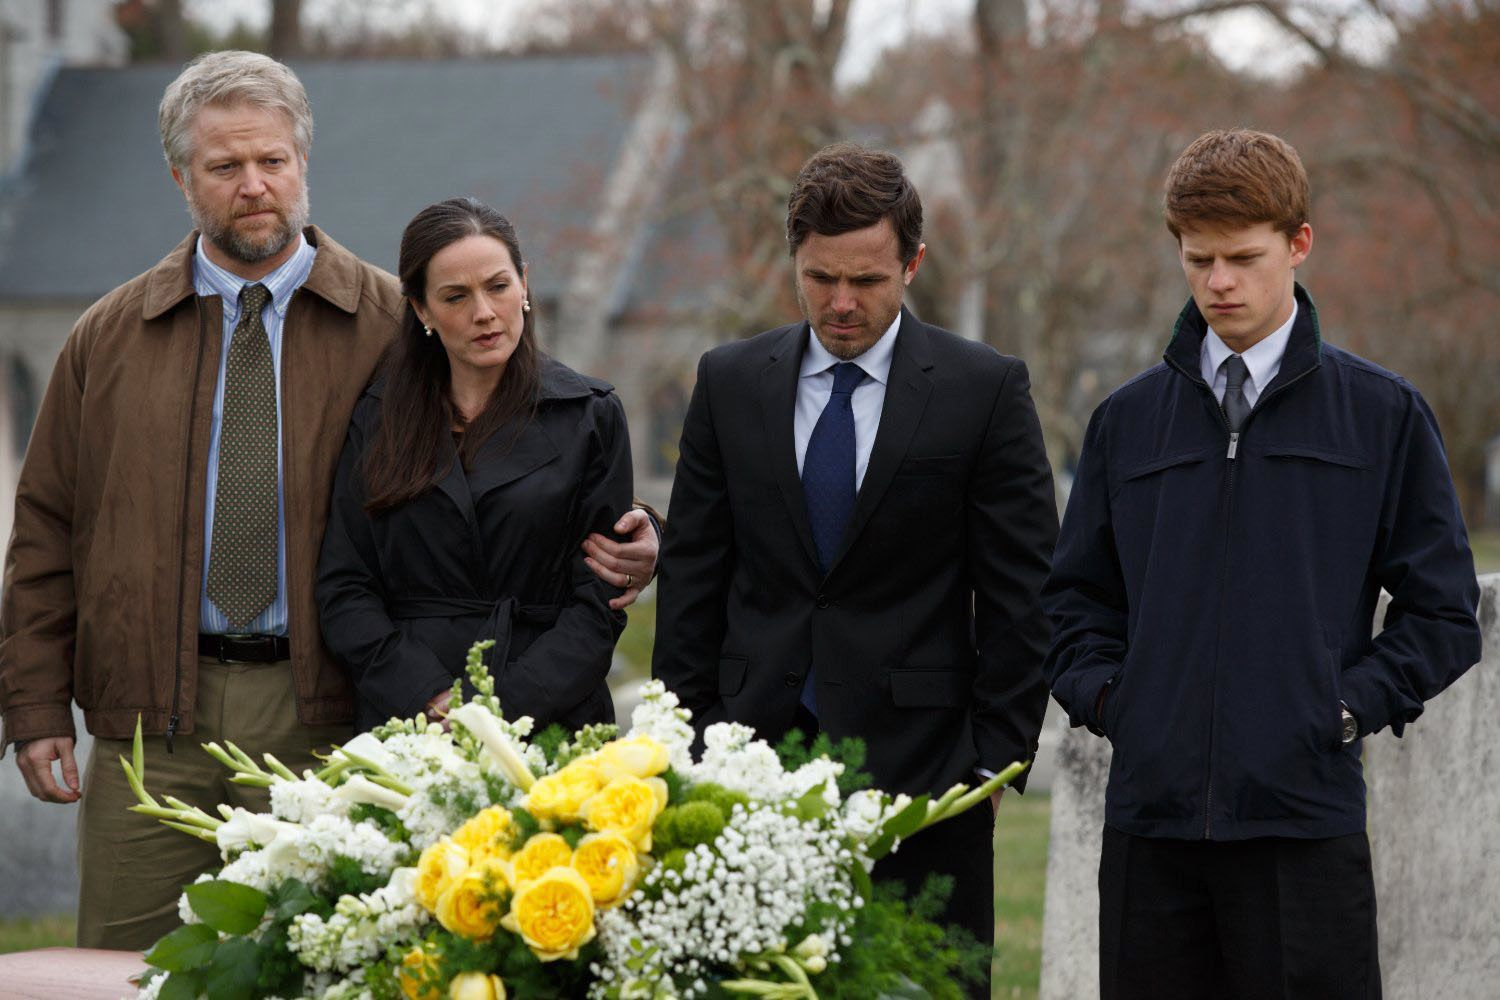 """(Left to Right) C.J. Wilson, Jami Tennille, Casey Affleck and Lucas Hedges in a scene from the movie """"Manchester by the Sea"""" directed by Kenneth Lonergan."""